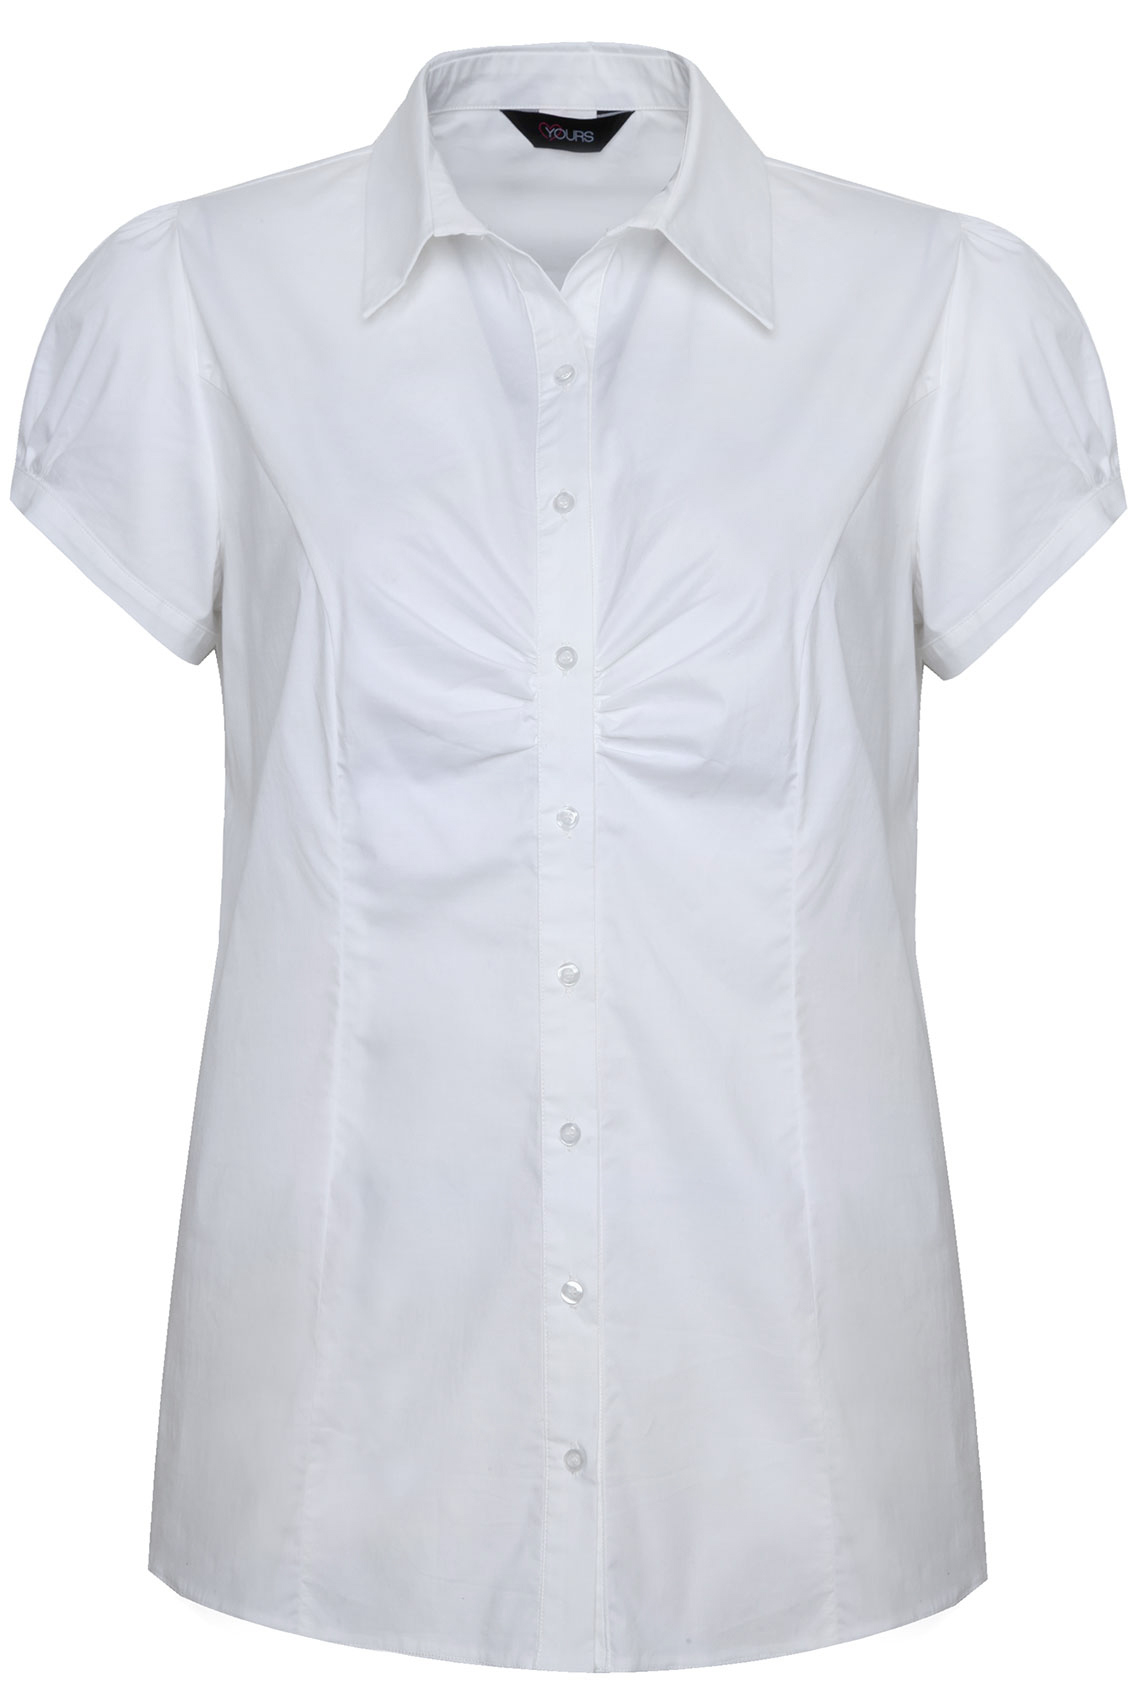 white plain cotton work shirt with ruching detail plus